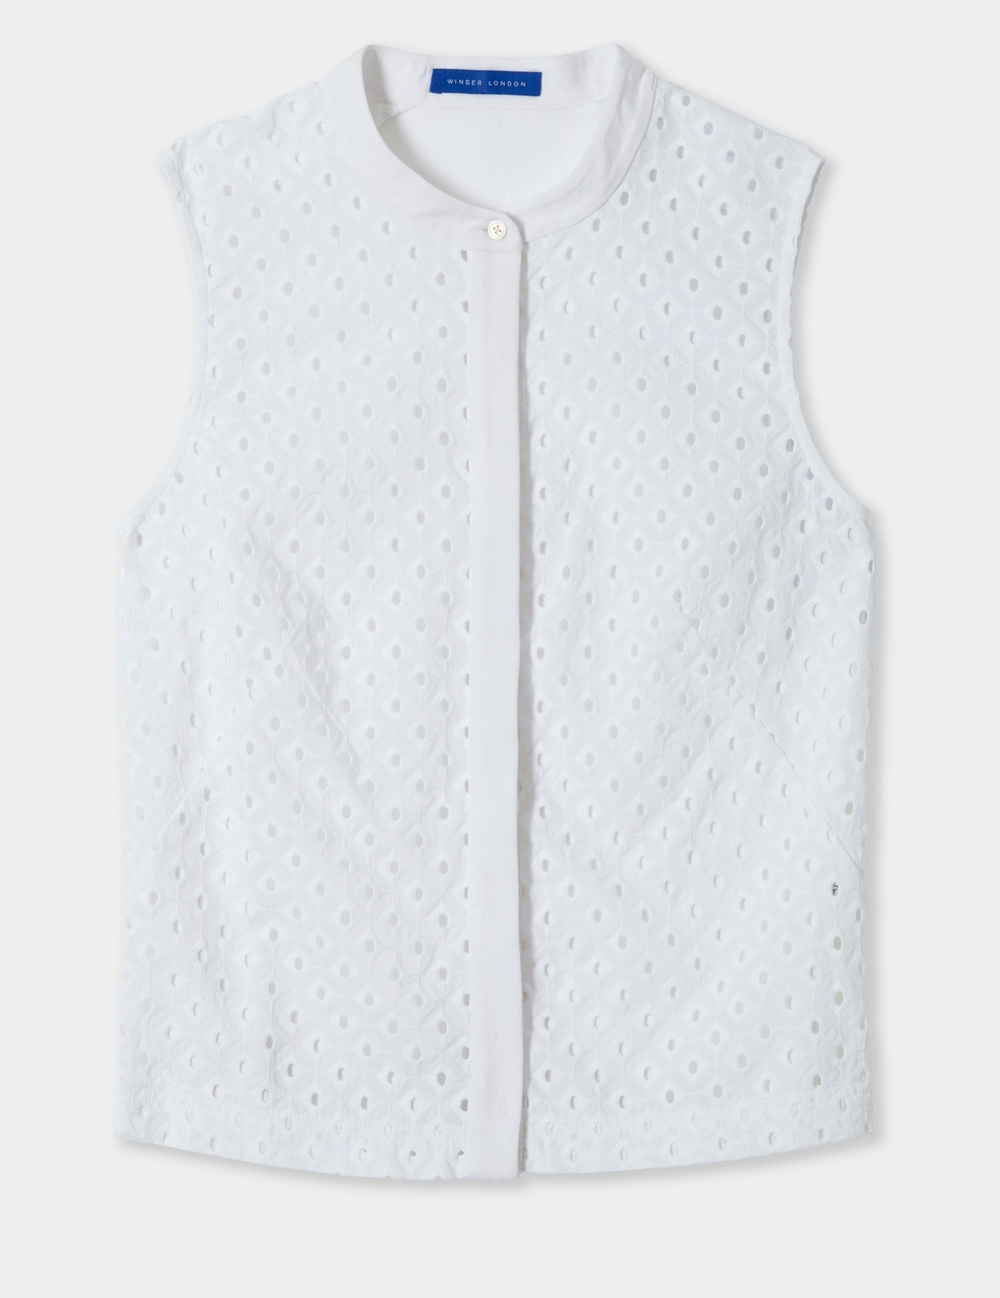 WINSER LONDON - SLEEVELESS BRODERIE ANGLAISE TOP IN WHITE - £89